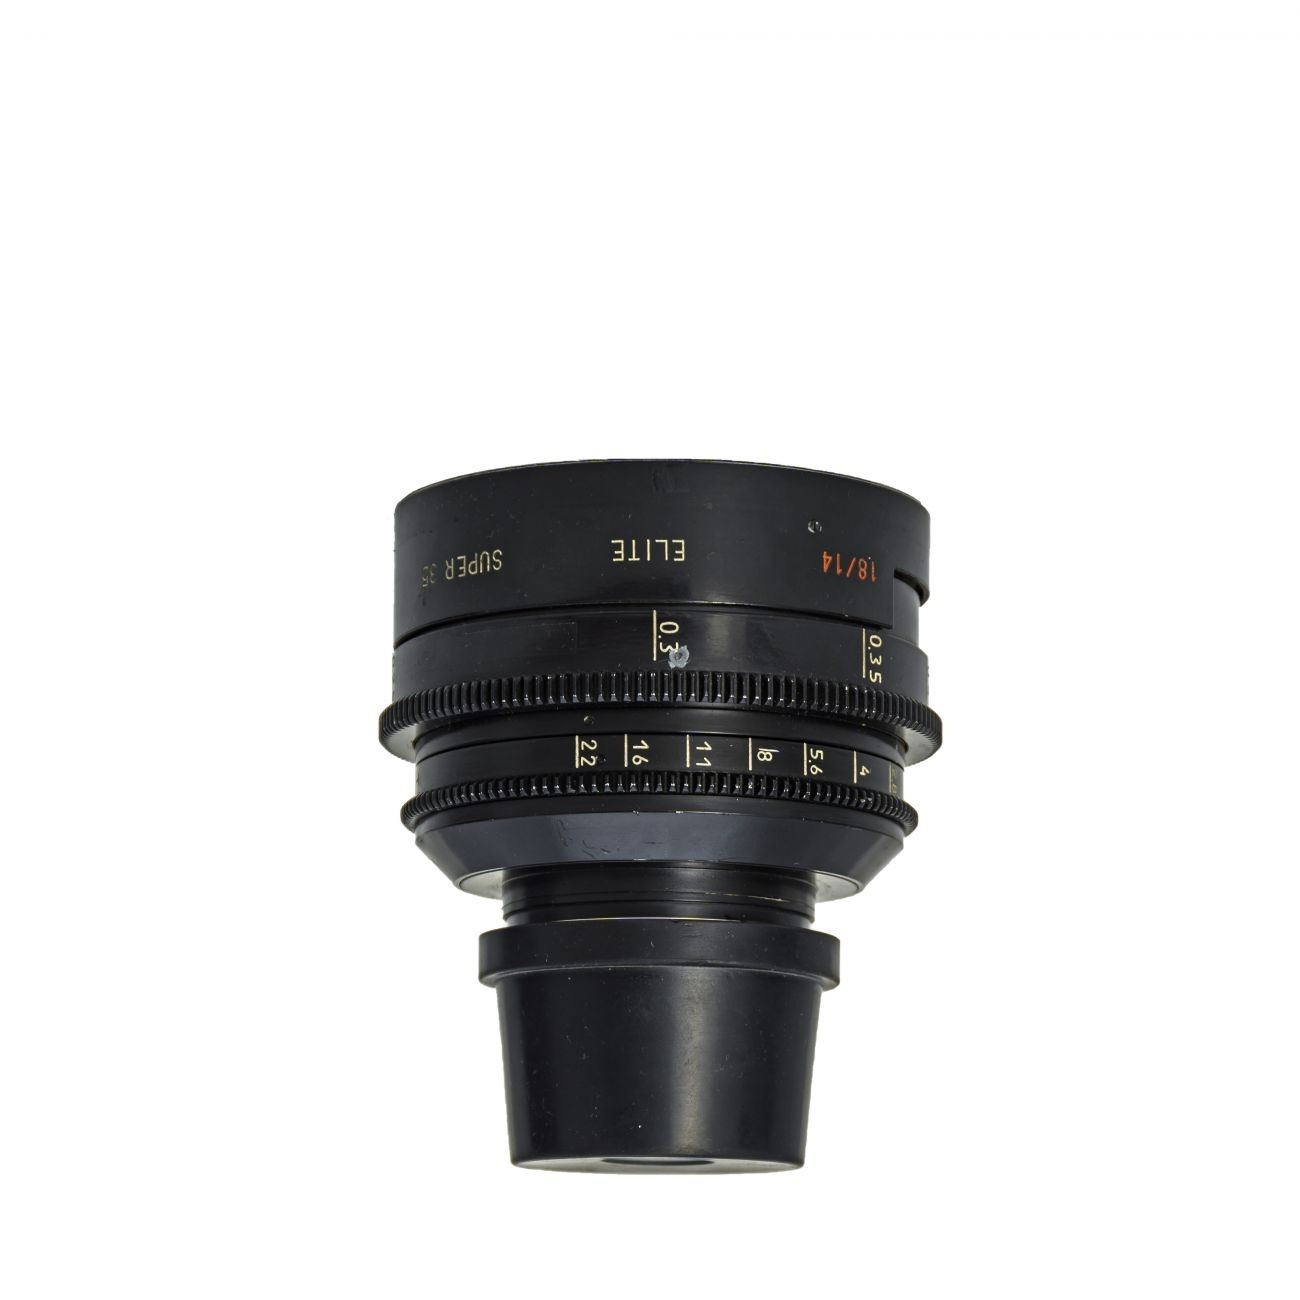 14mm lens ELITE T1.8 SUPER 35